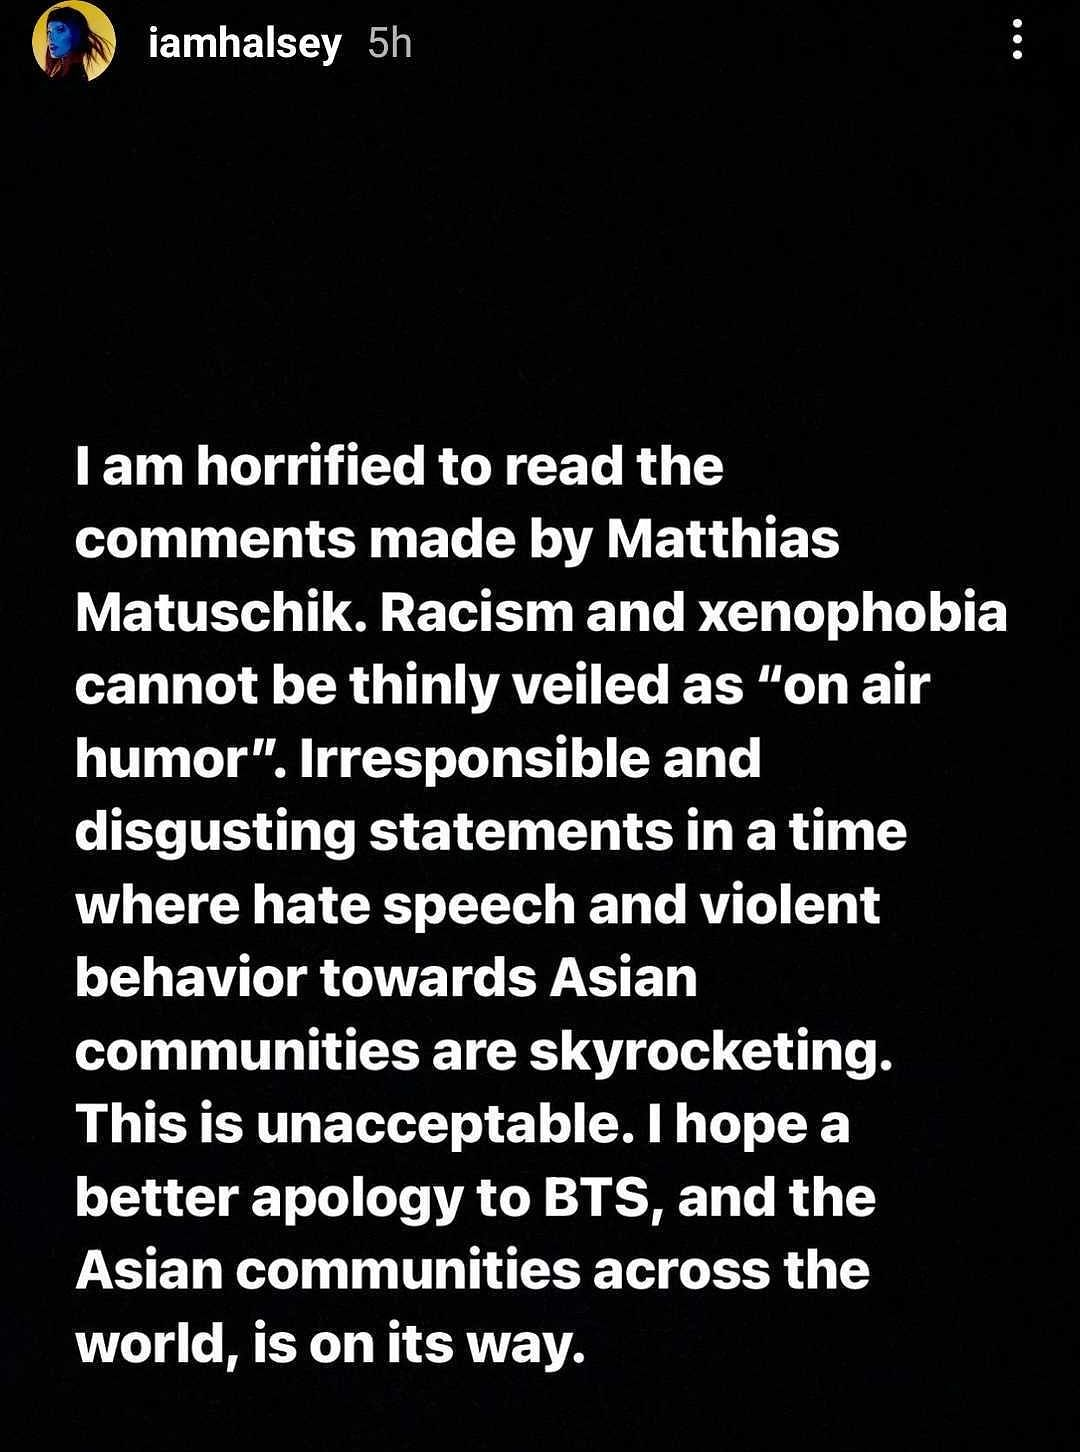 Bayern 3 Racism Row: Singers Halsey, Lauv, and Max speak out in support of BTS